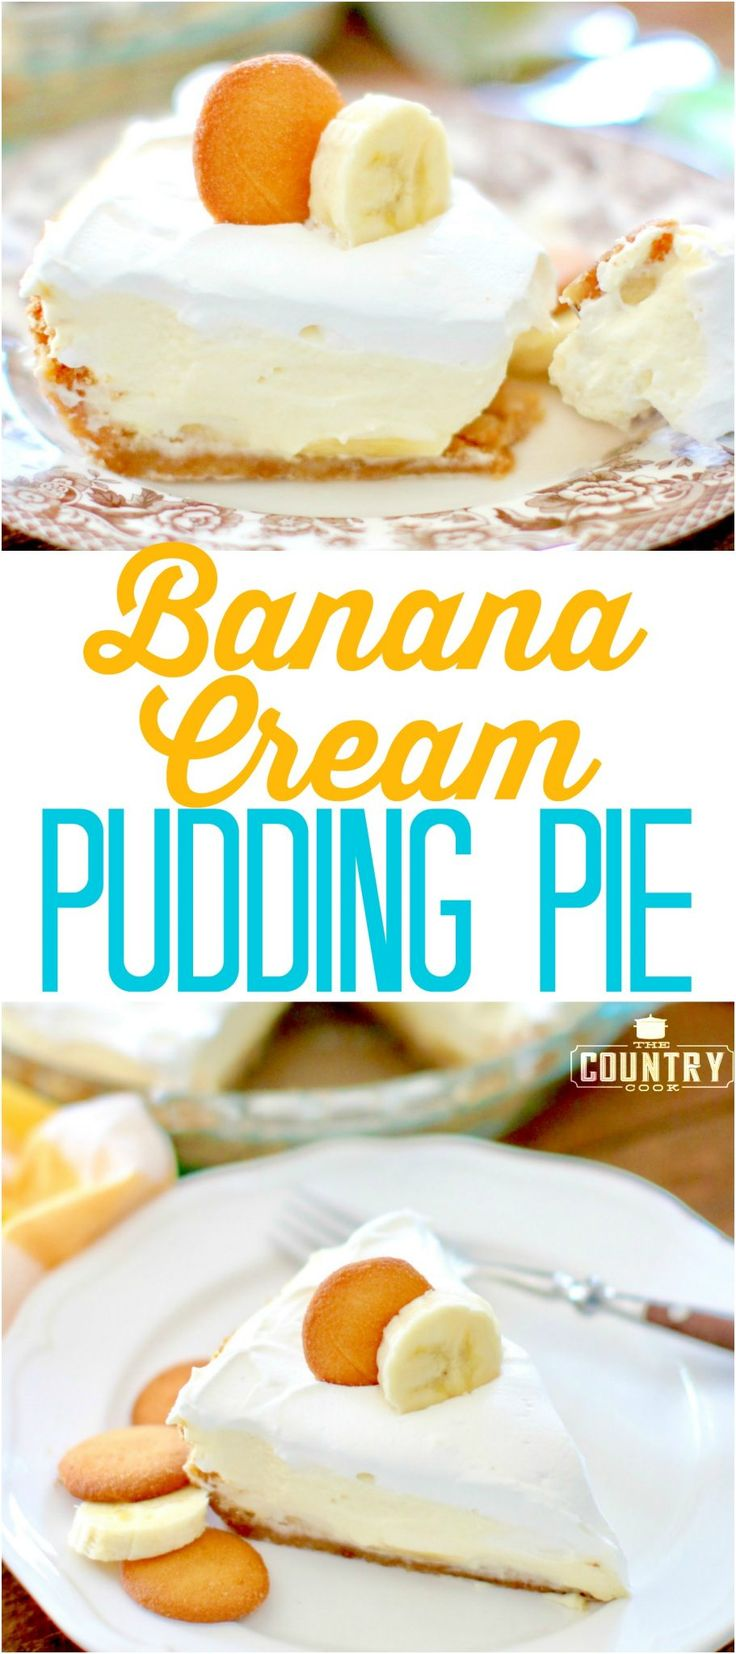 Banana Cream Pudding Pie recipe from The Country Cook